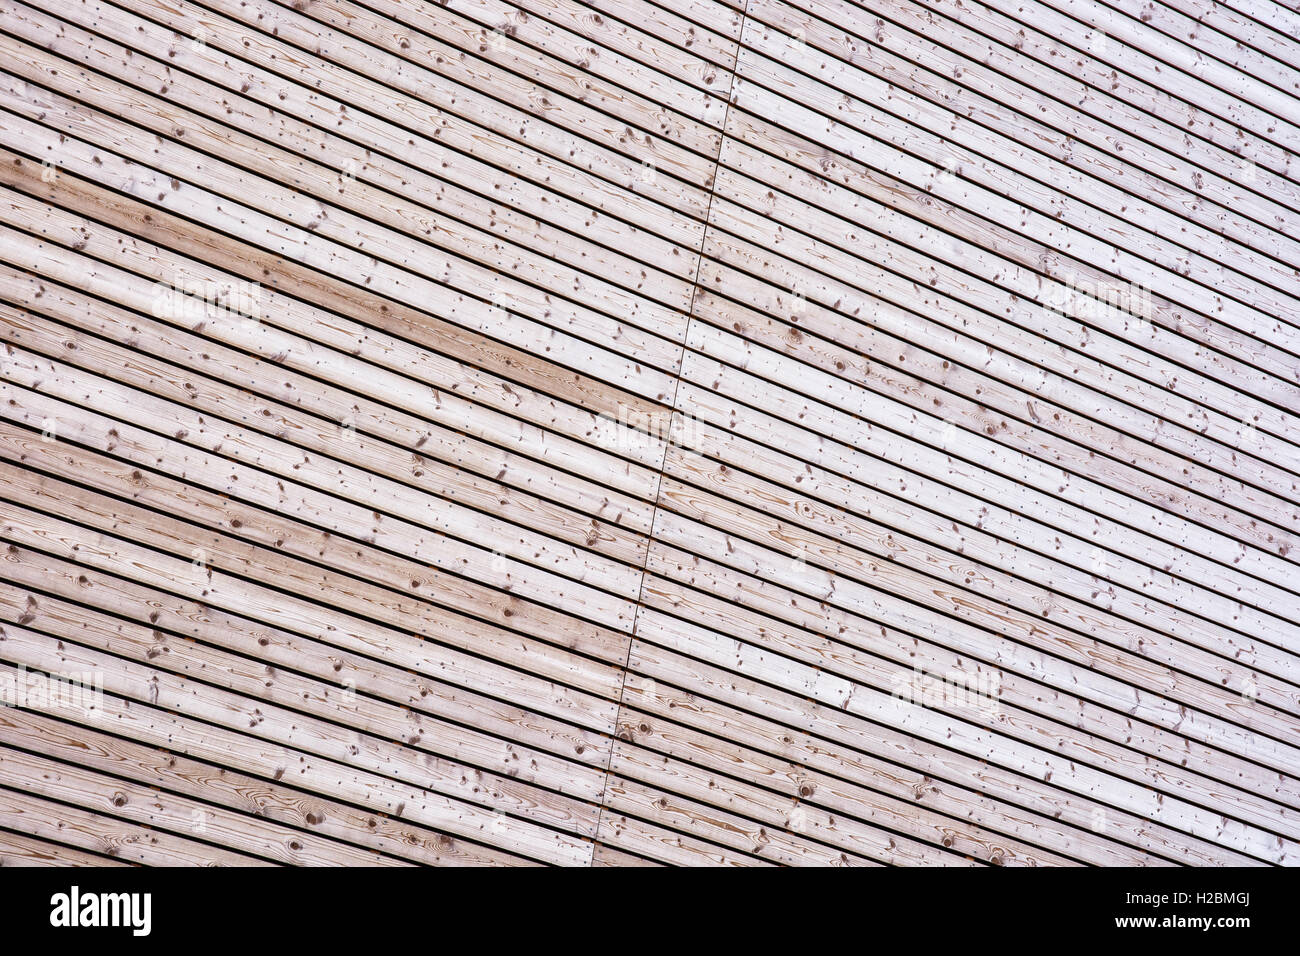 Background of geometric wooden texture. Building material. Abstract graphic resource. - Stock Image